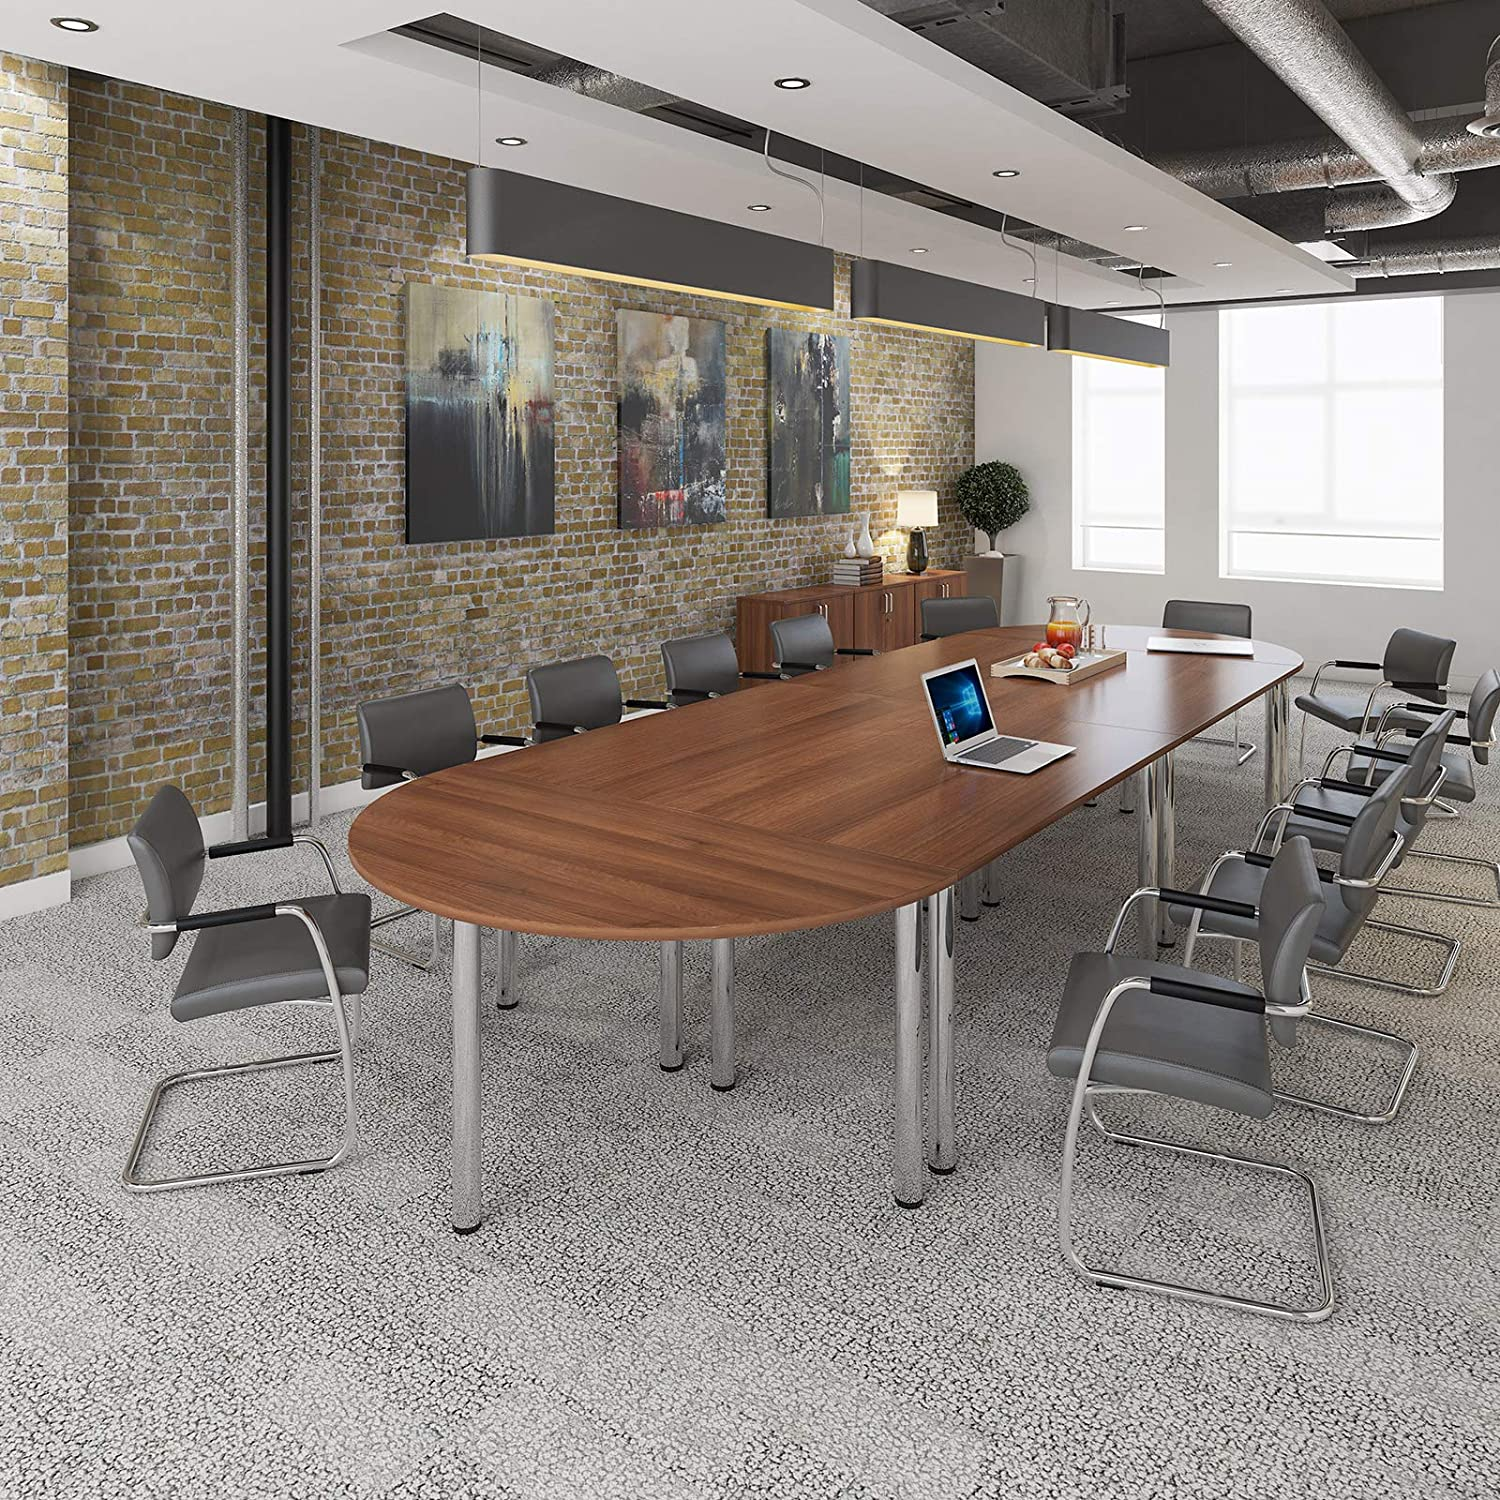 maple OFP Direct Radial end meeting table 2400mm x 1000mm with 6 chrome radial legs